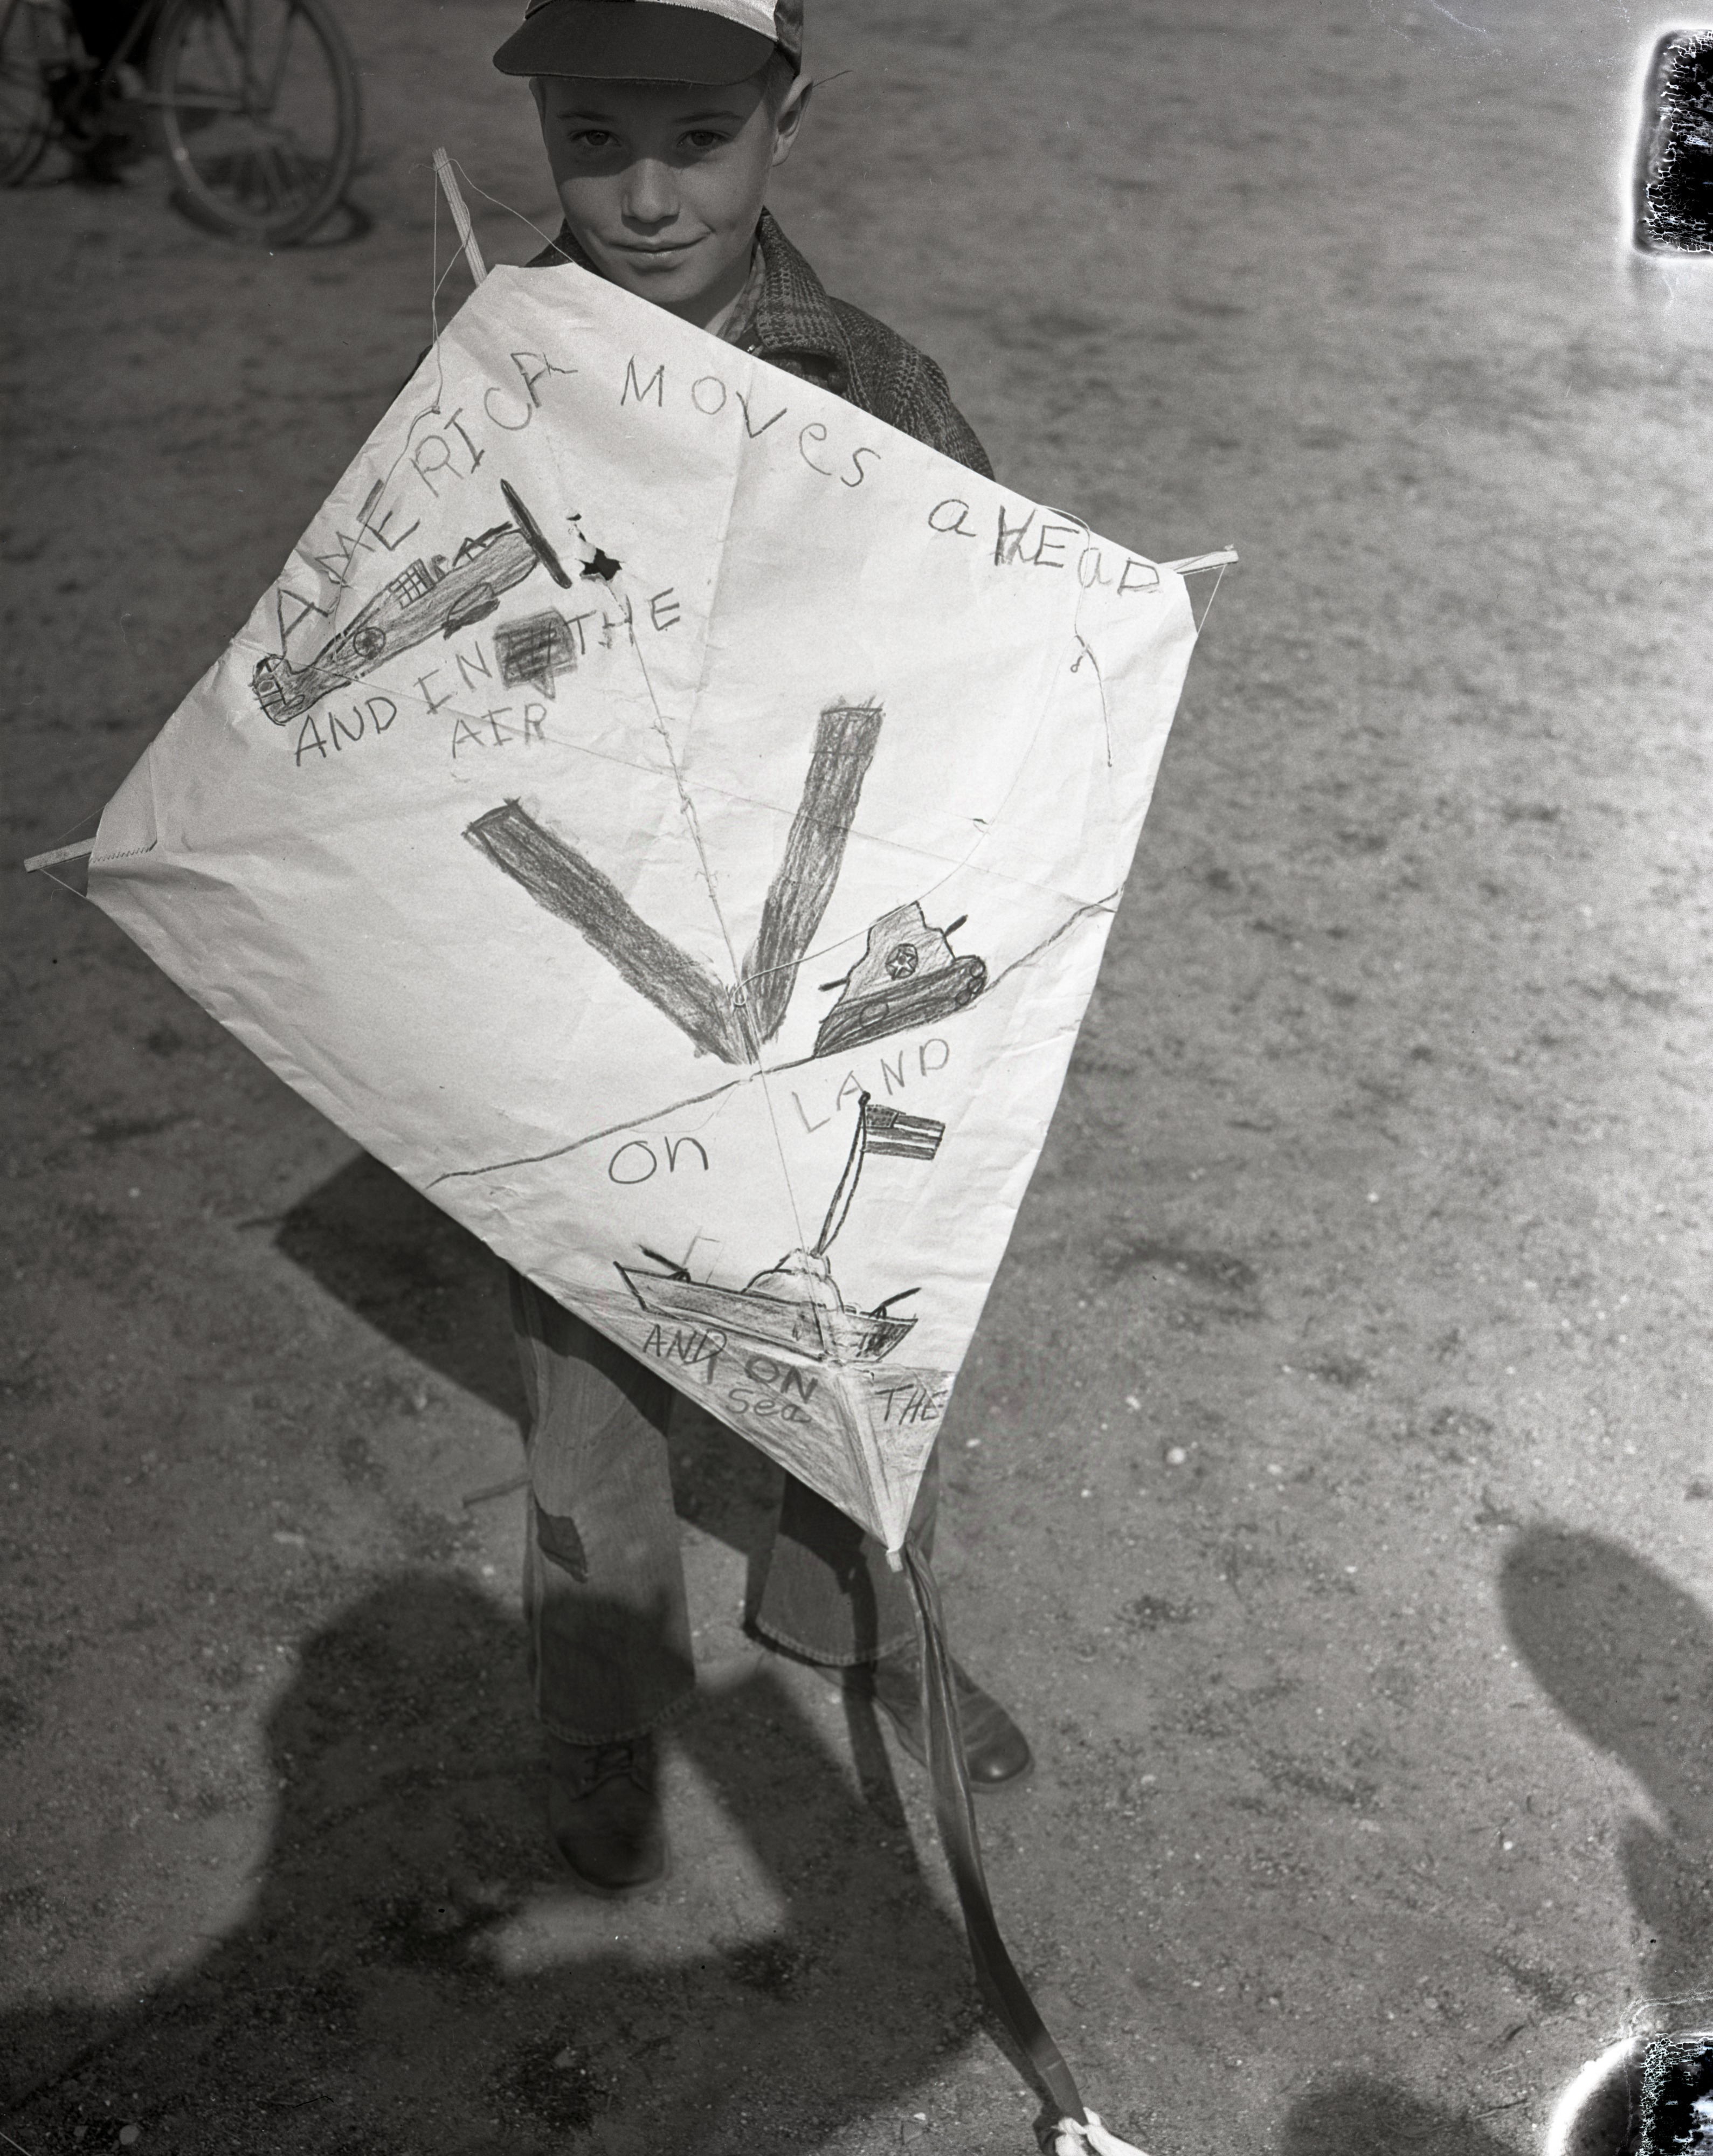 Ronald Hieber wins the Cub Kite Tourney, April 1942 image